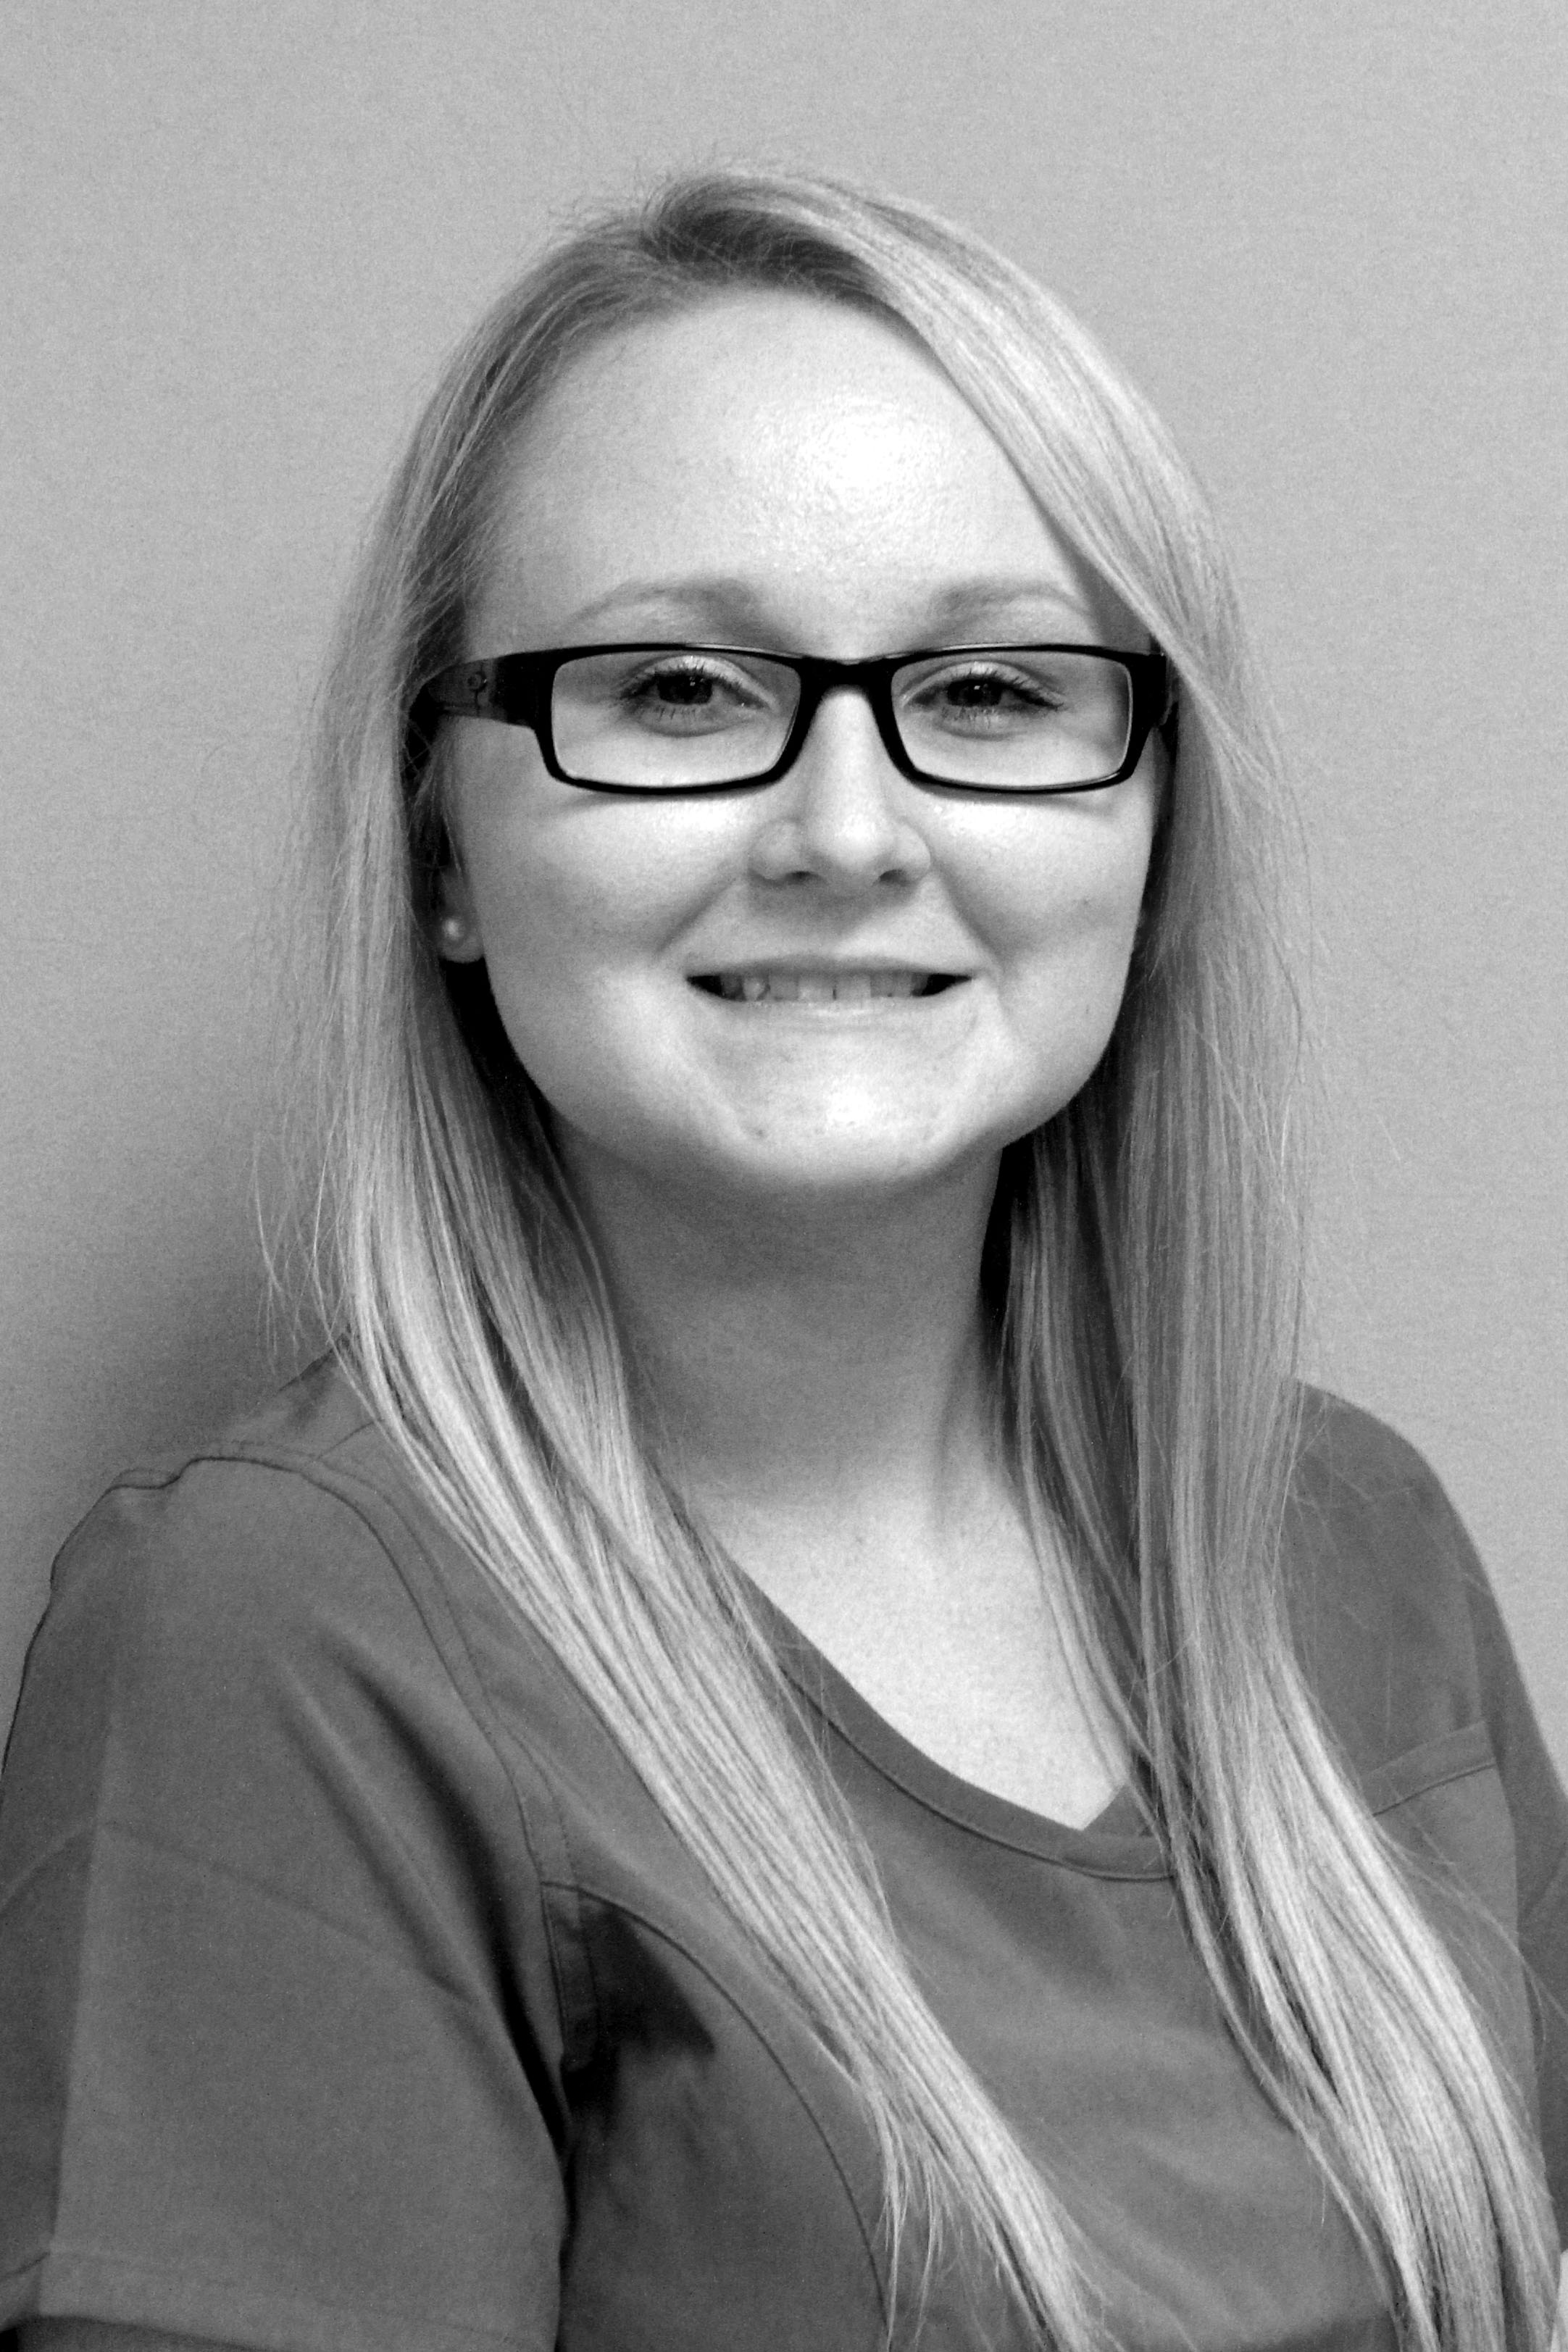 Nicole - Surgical Assistant